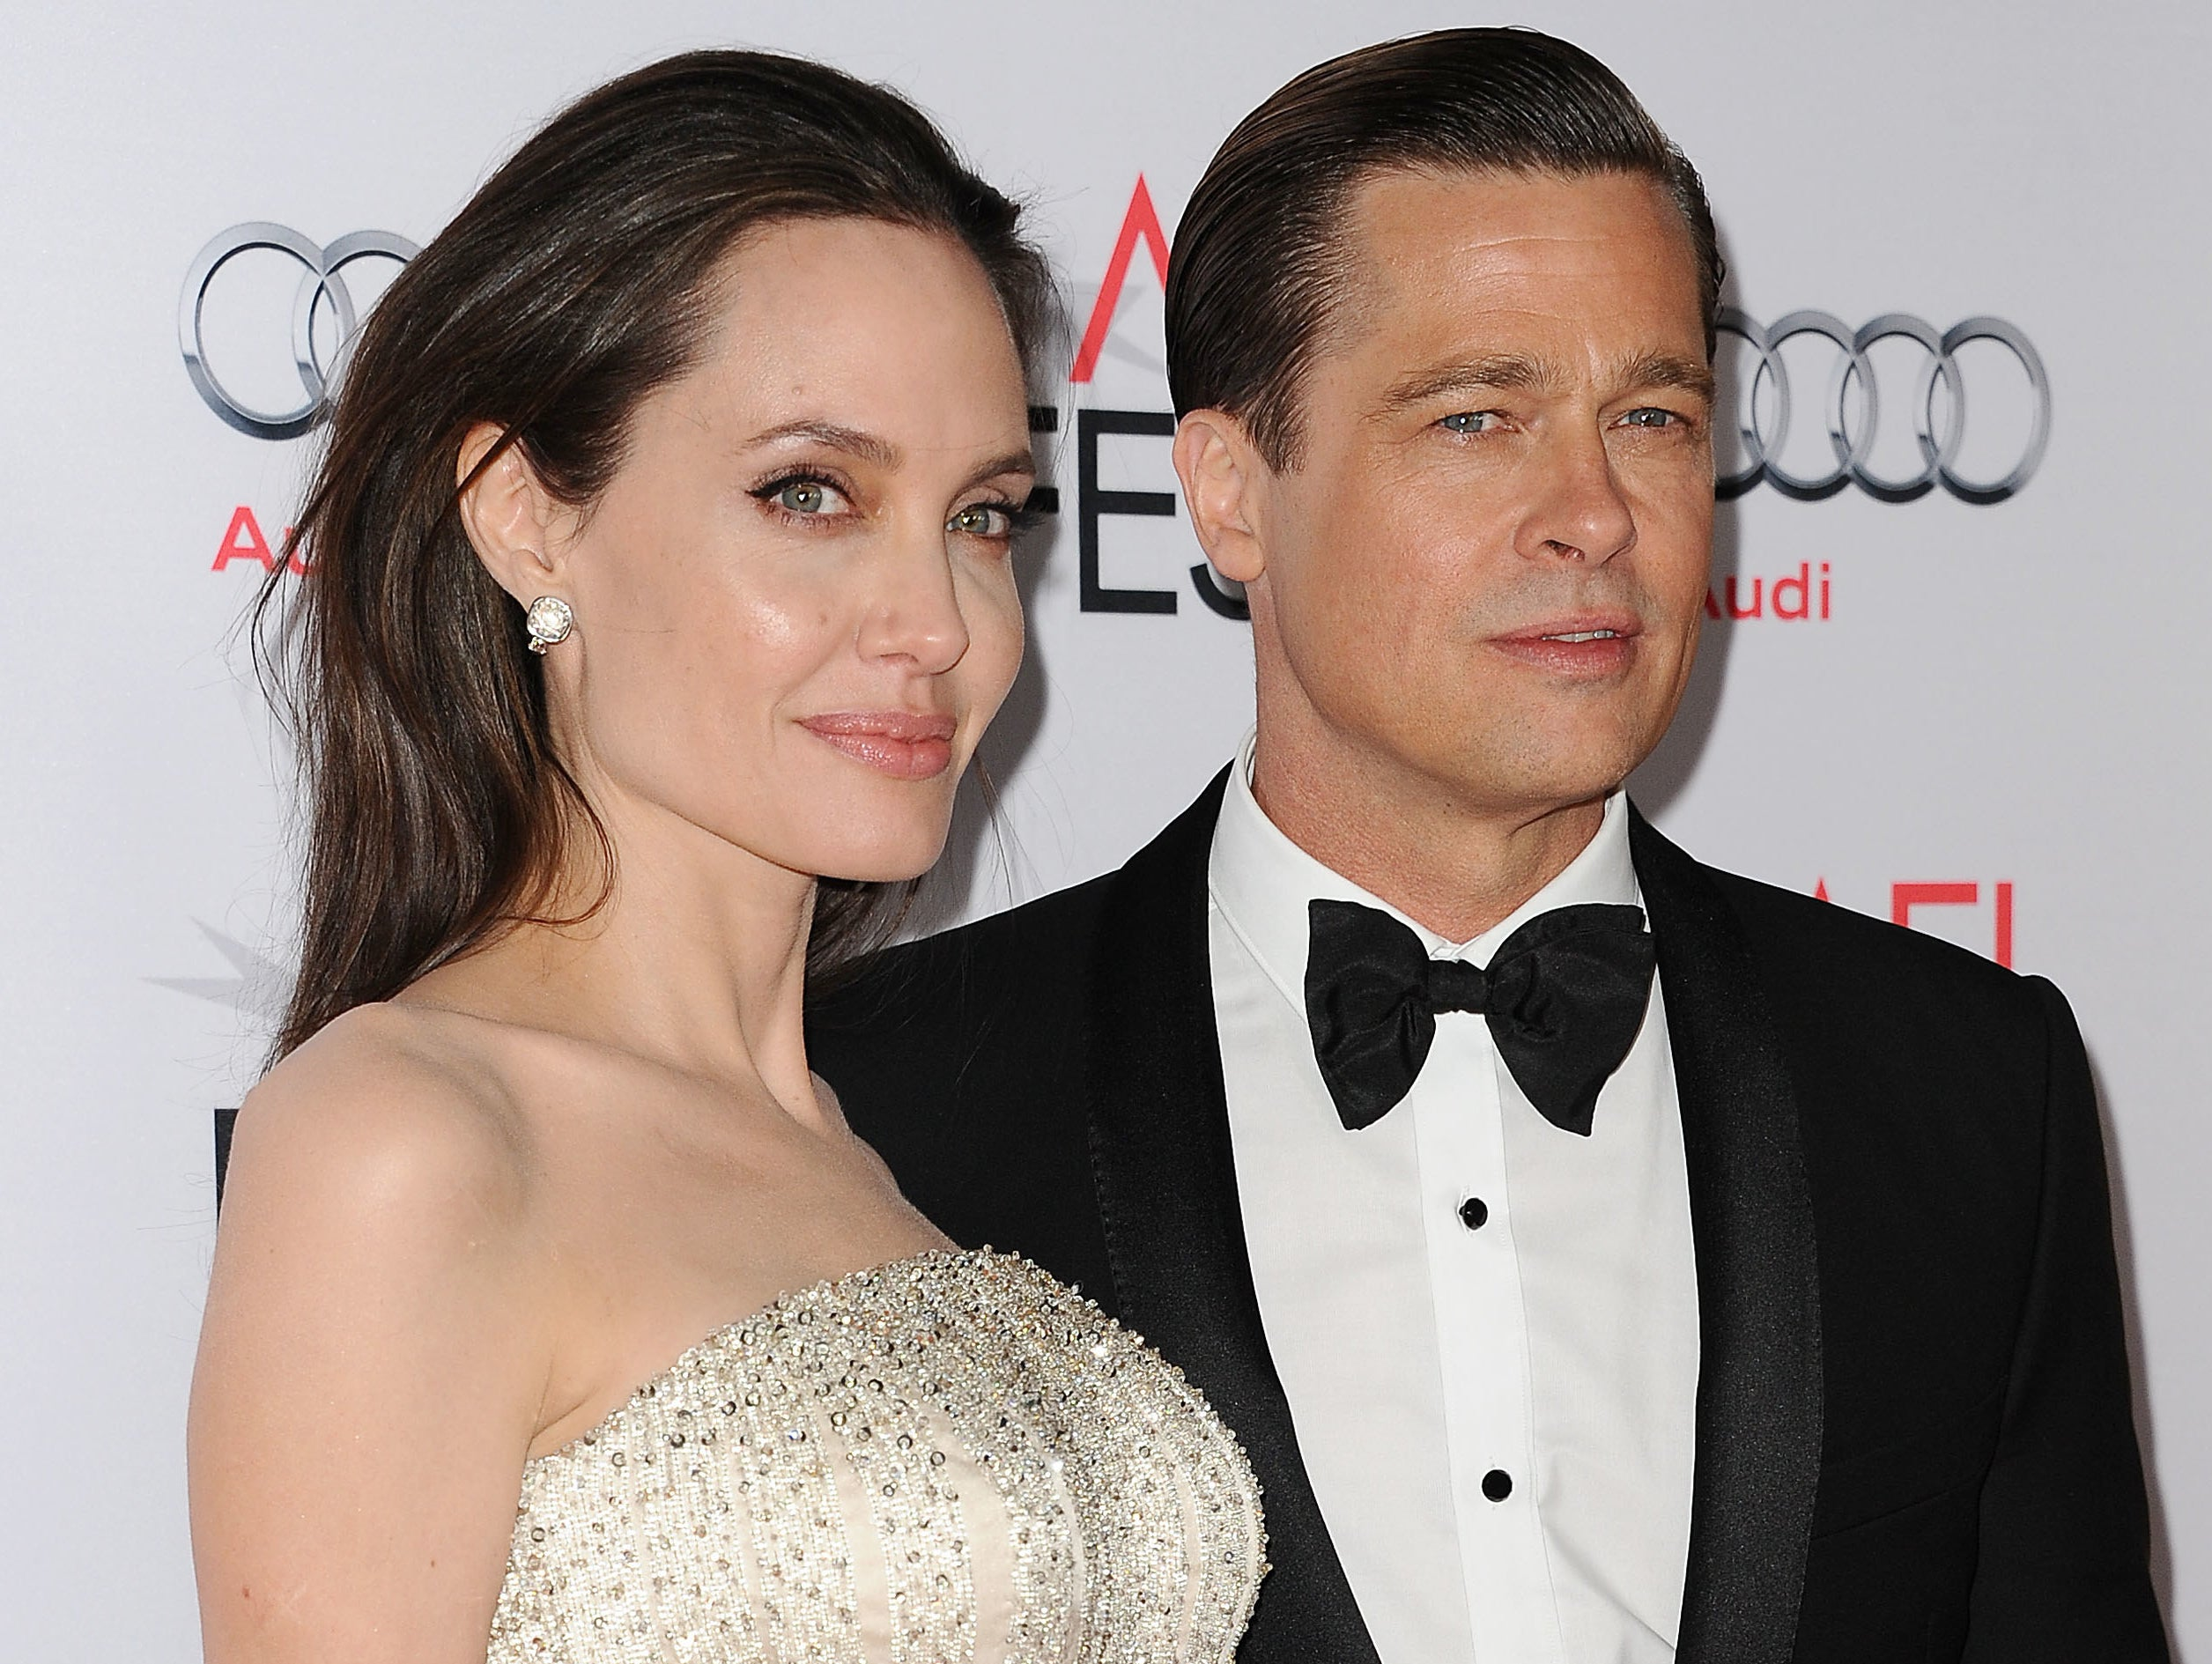 Angelina poses with Brad at an old event